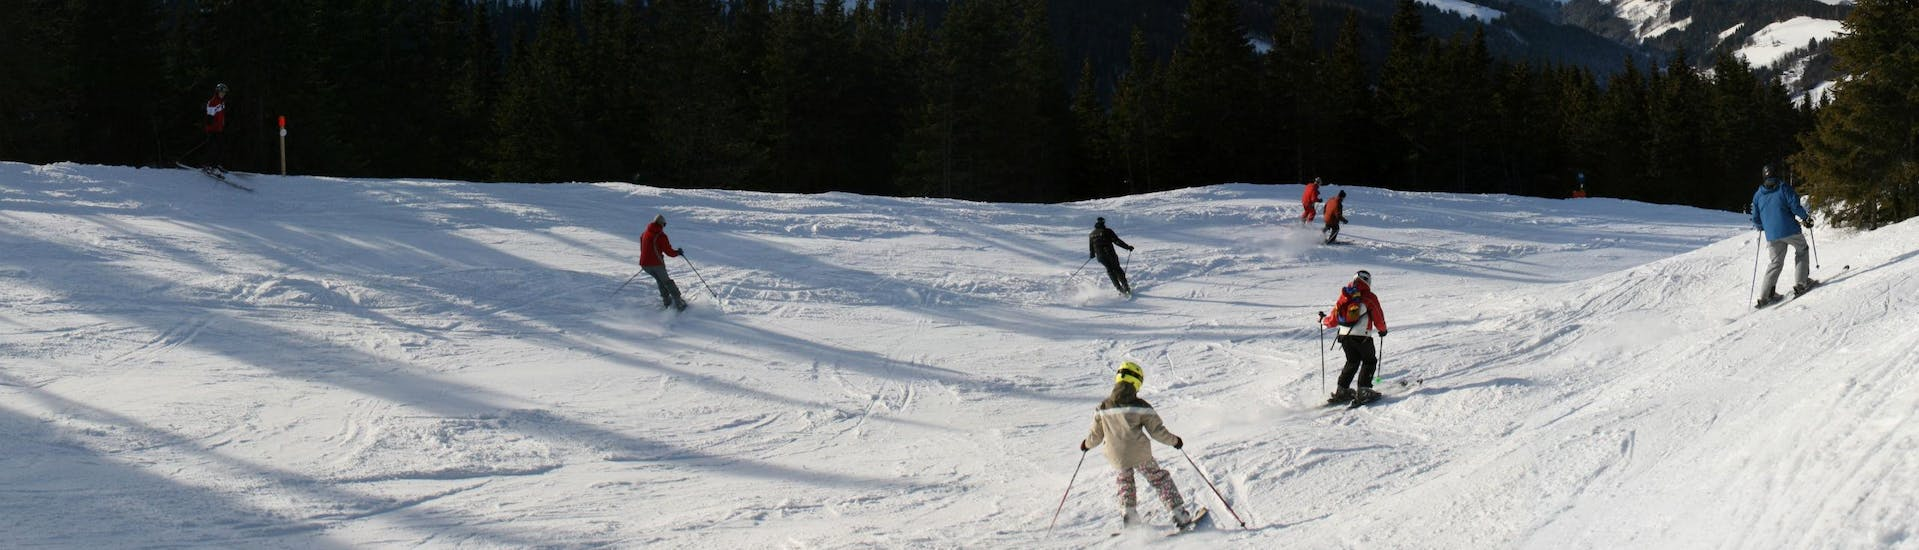 Several skiers are enjoying themselves on one of the ski slopes in the ski resort Stuhleck, where local ski schools offer different types of ski lessons.